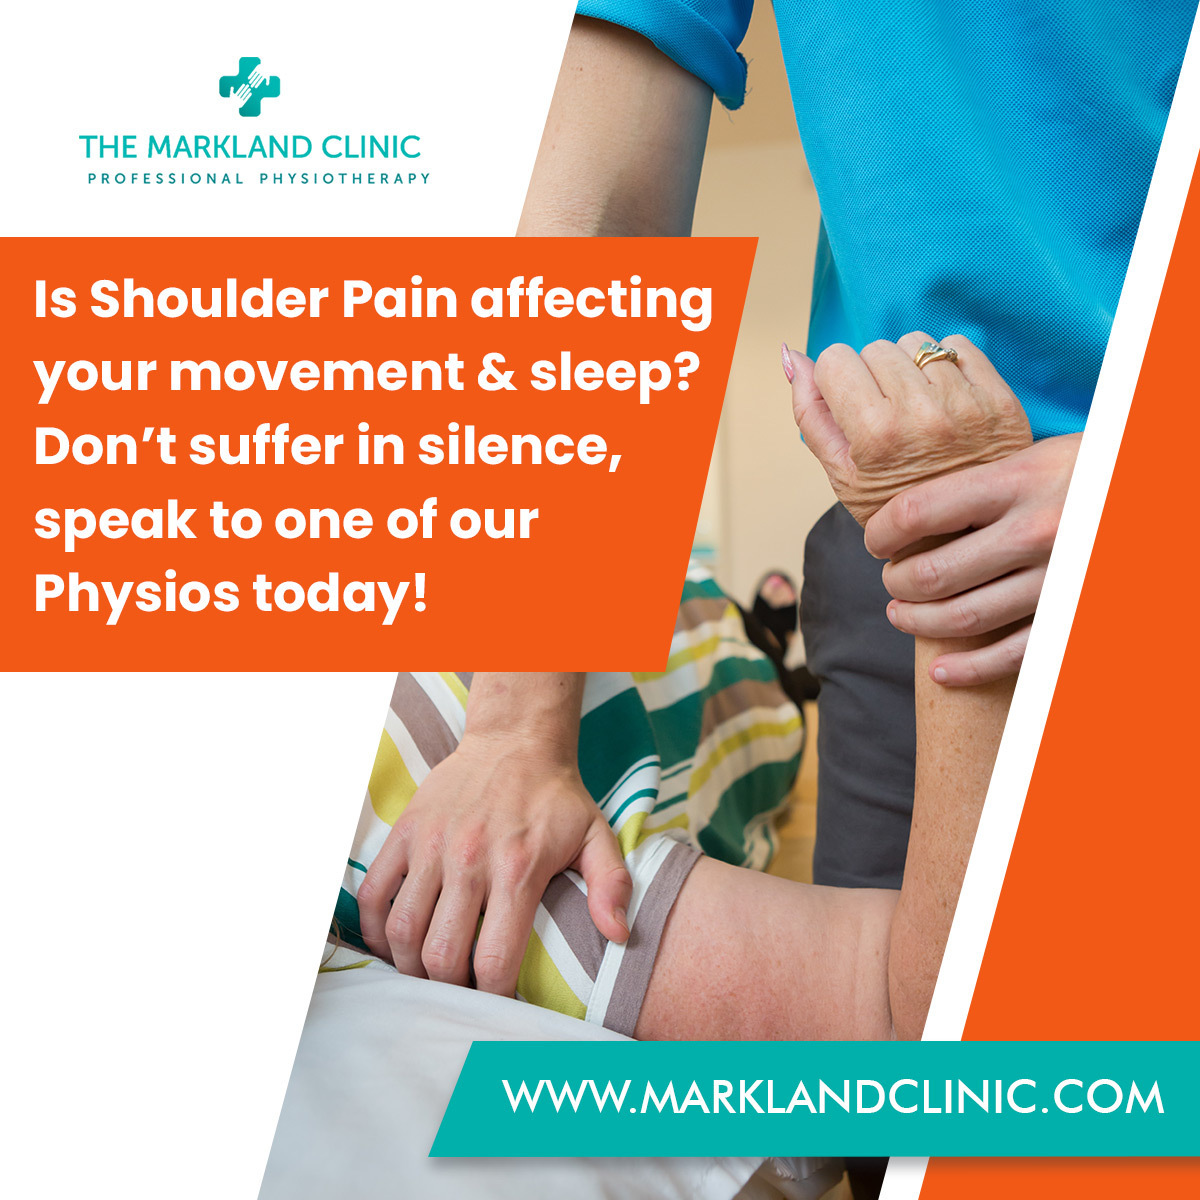 Shoulder Pain can often occur without notice and affect your everyday life.  Click here    Painkillers only mask the problem. Come and see us and let's get you pain-free!  #marklandclinic #pain #physio #shoulder #painfree #physiotherapy #physiotherapis ...